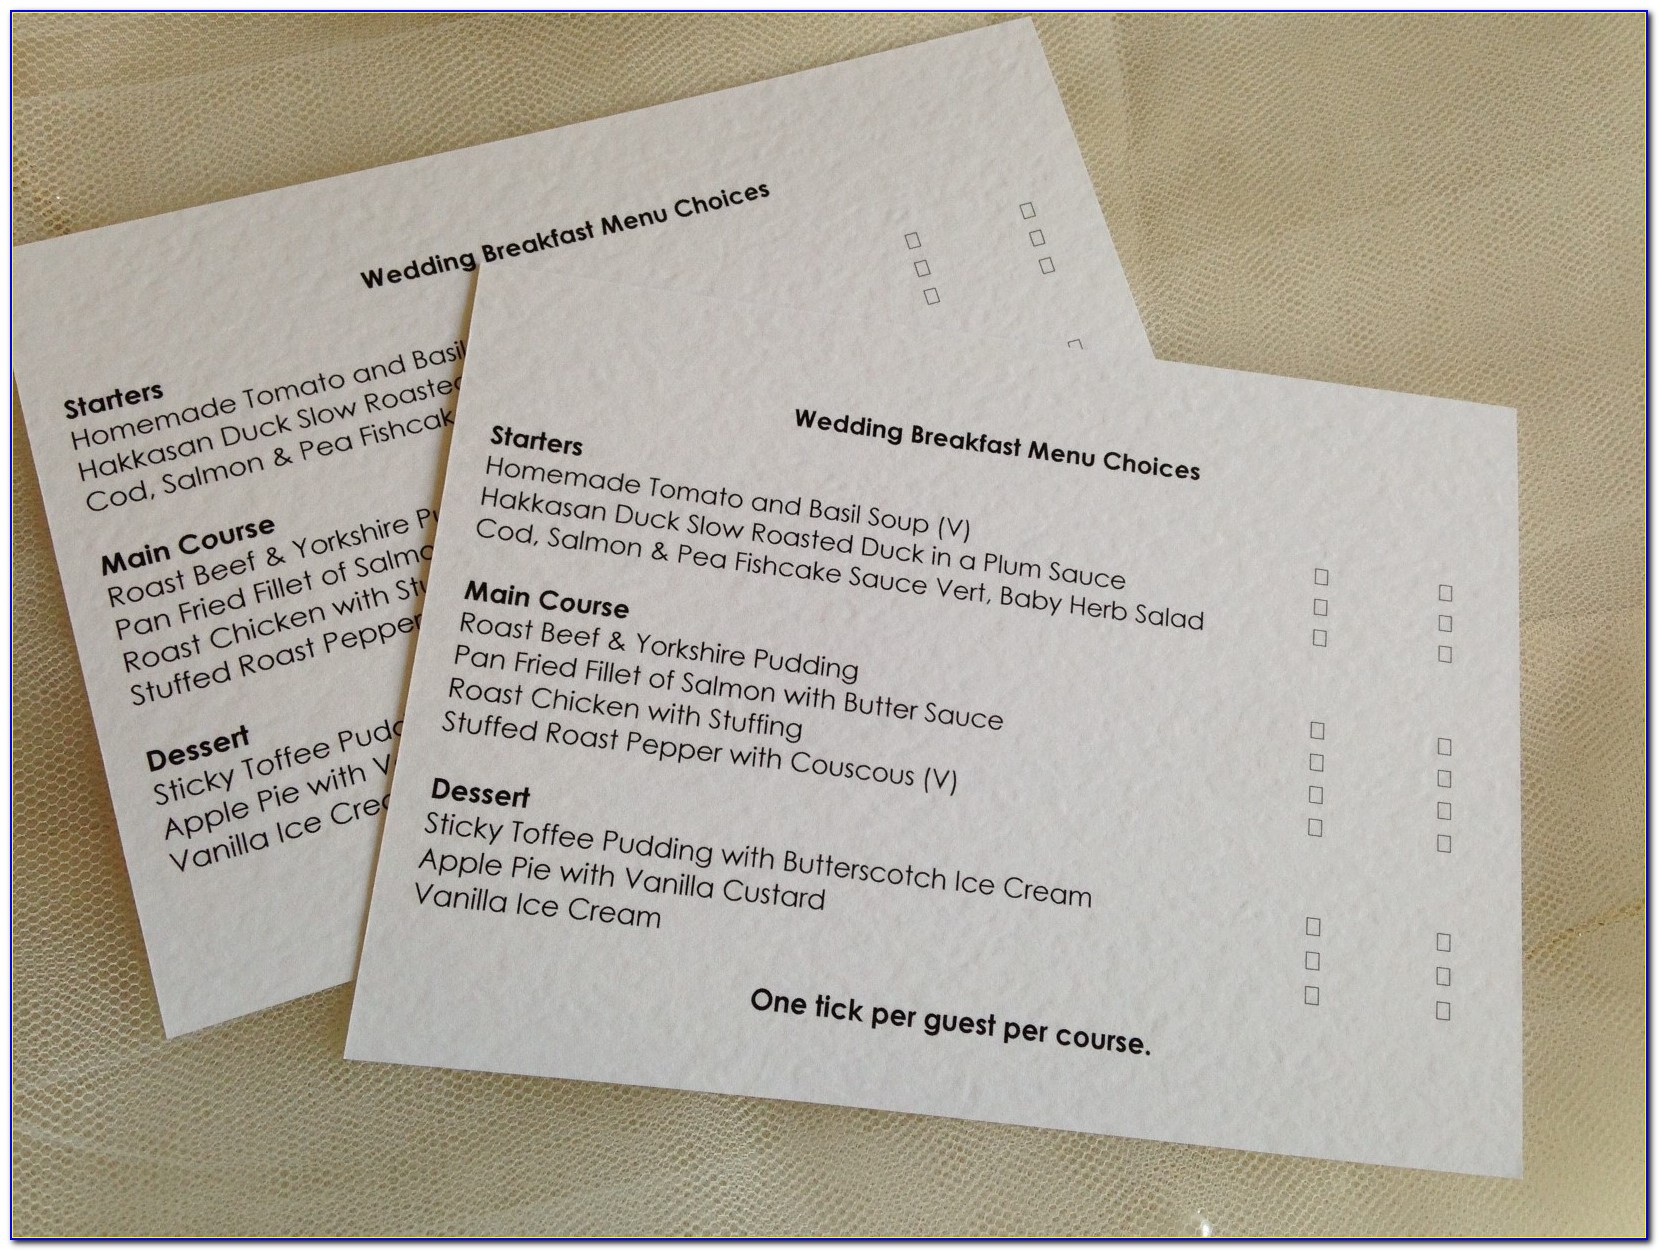 Rsvp Cards For Wedding With Menu Choices